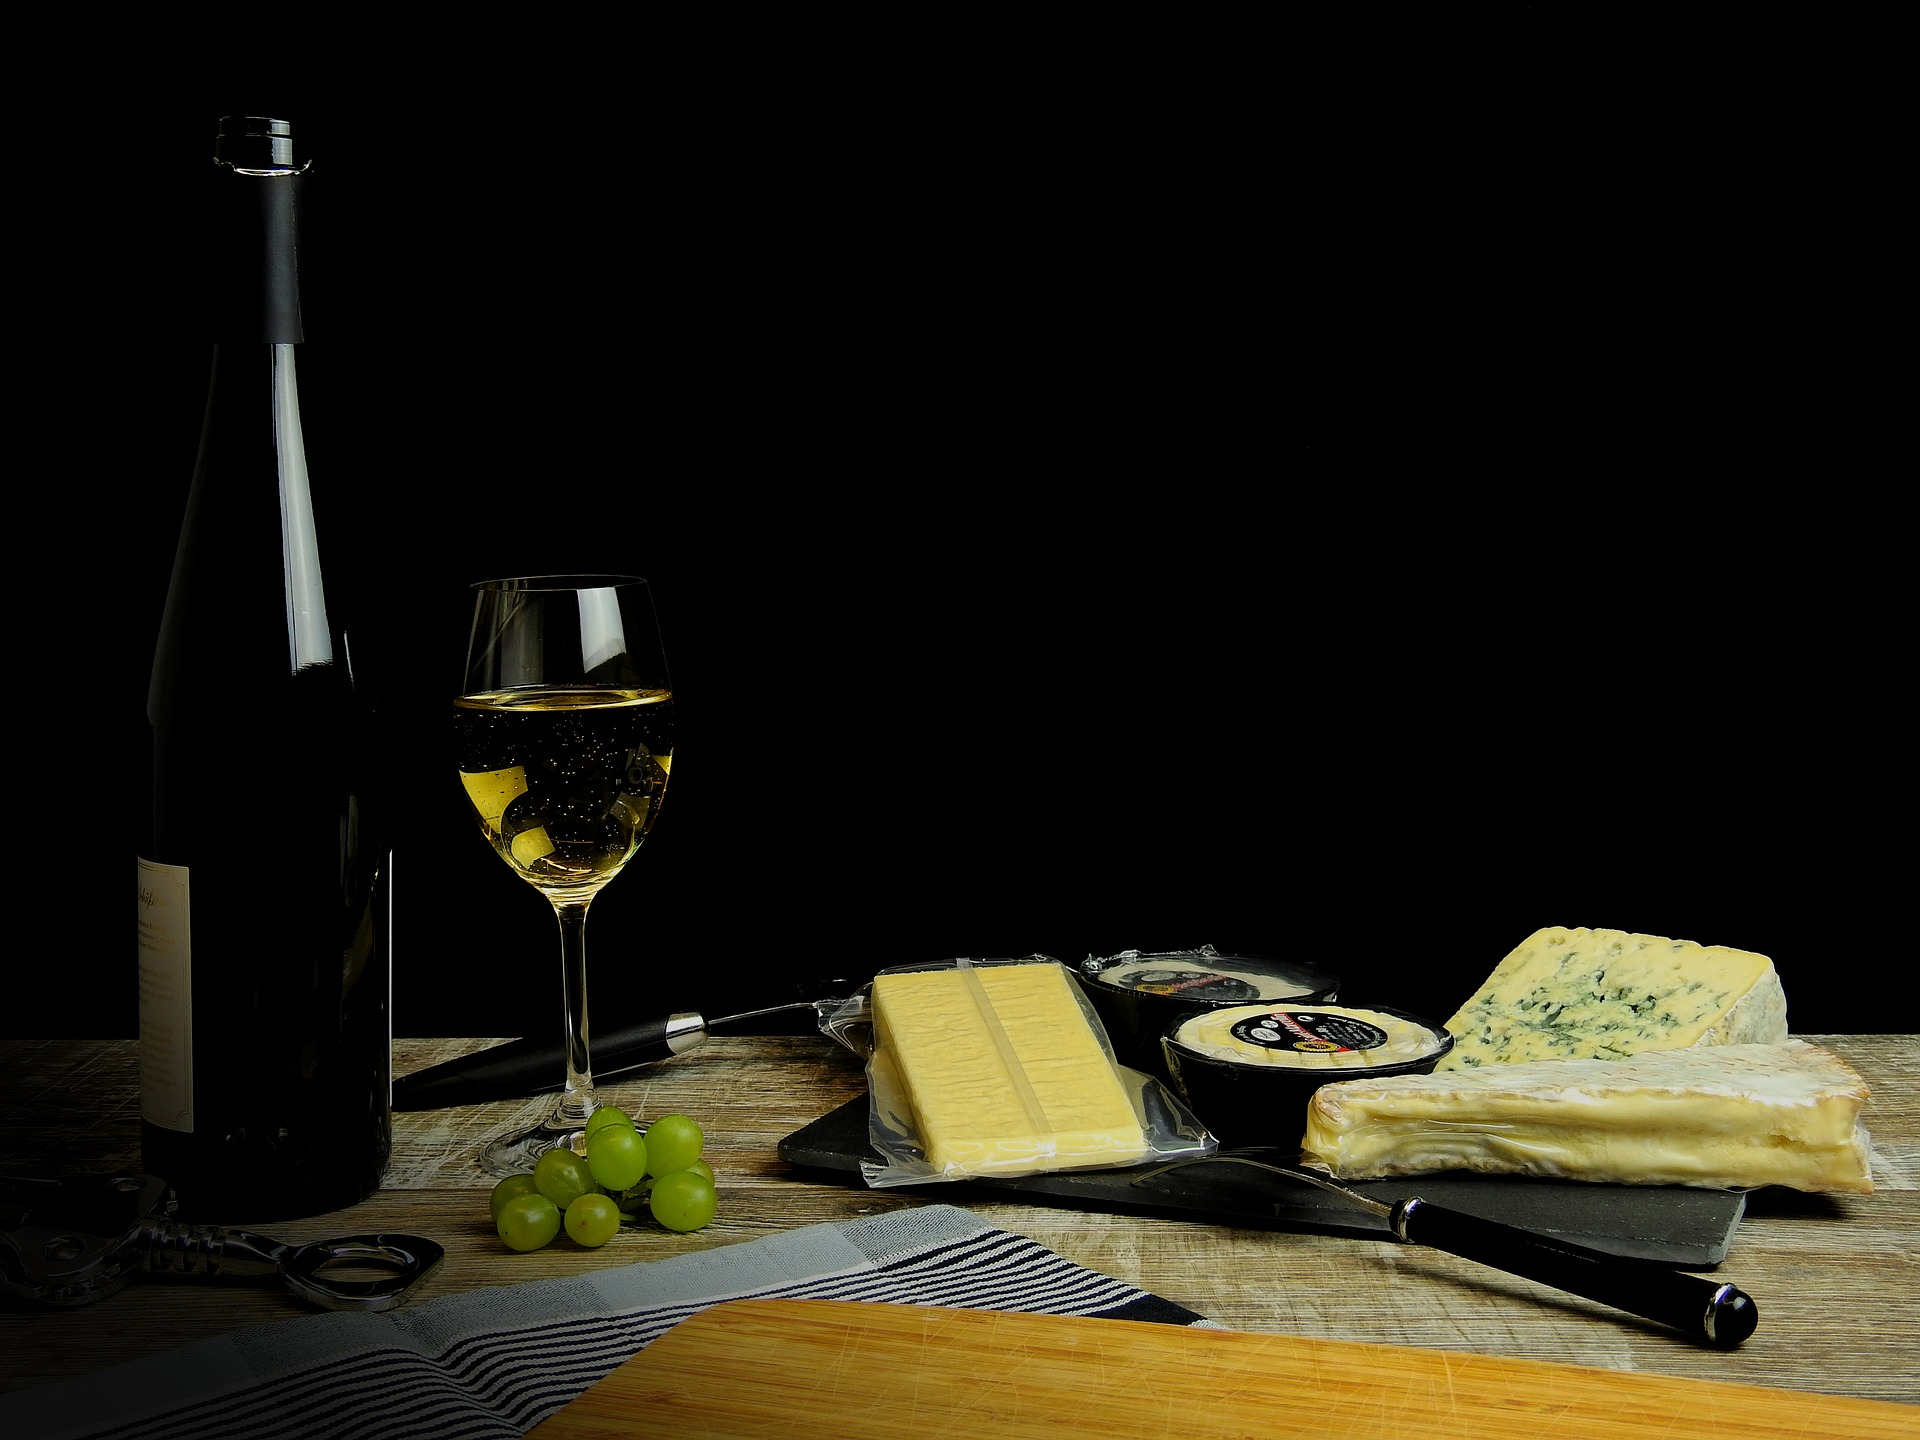 Wine and Cheese? Yes, please!